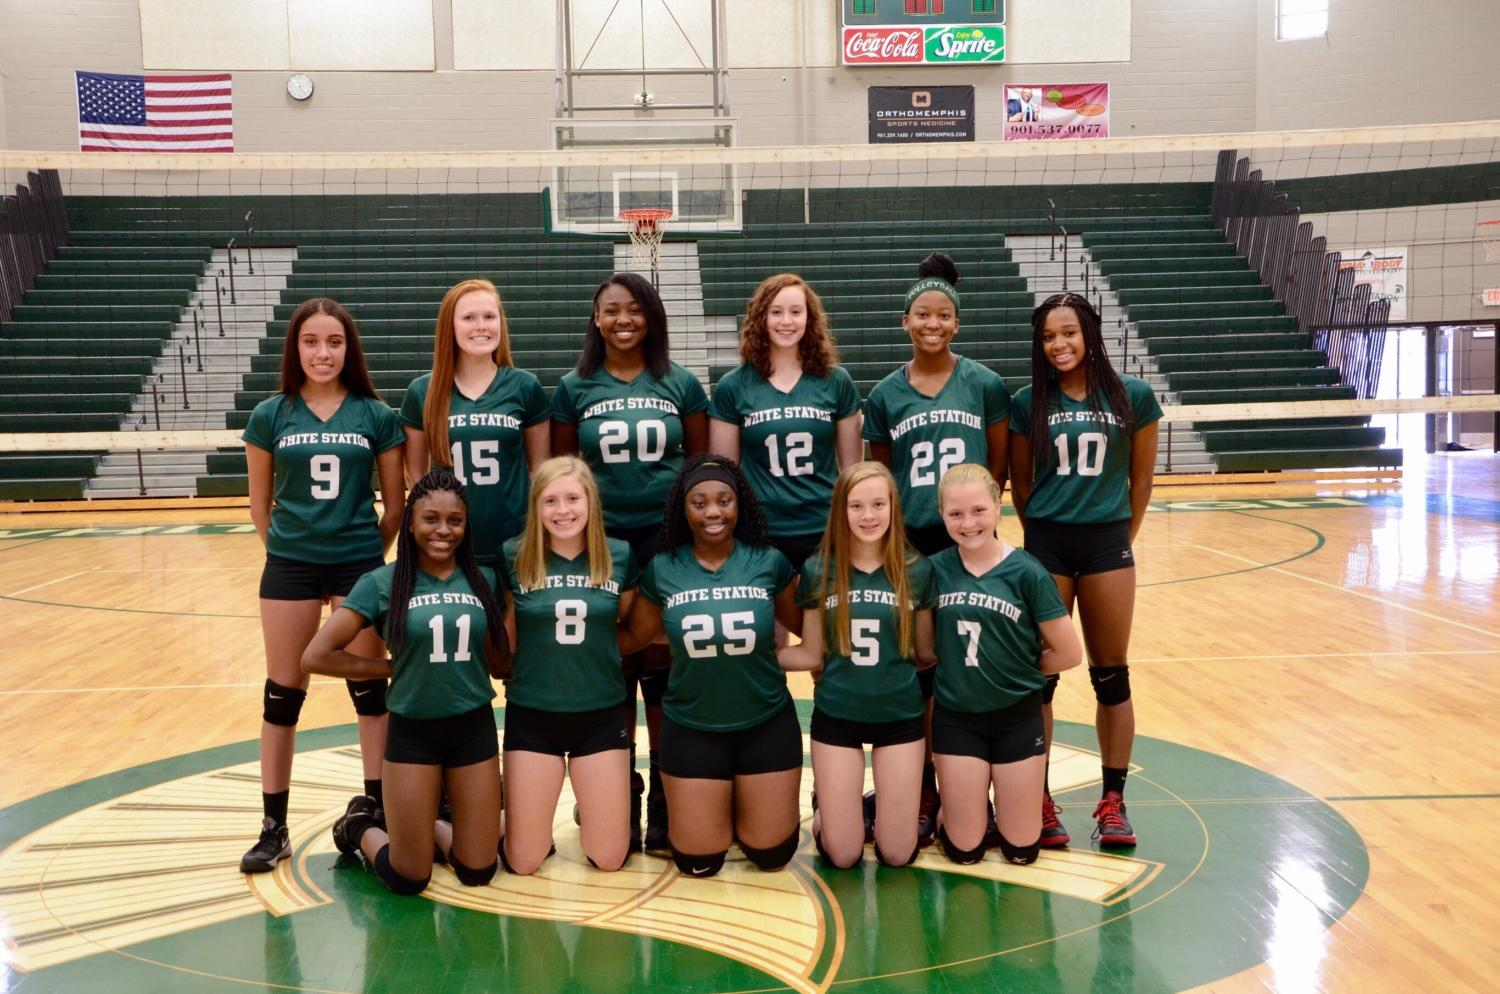 The 2017 Lady Spartans Volleyball team assemble for a team picture.